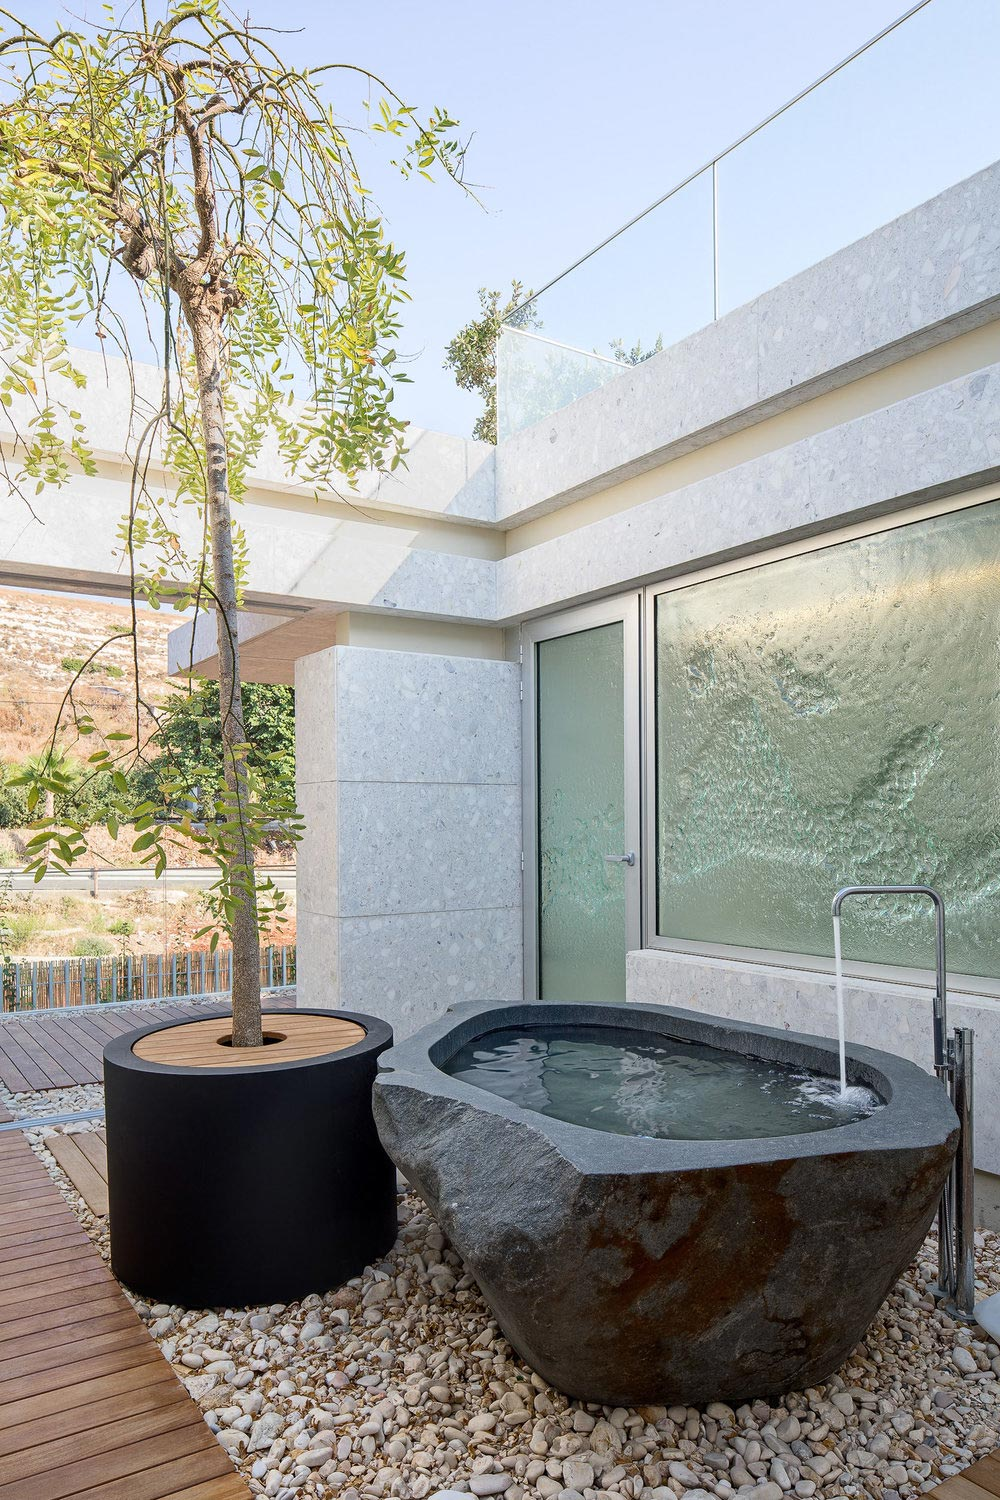 Outdoor natural stone bath